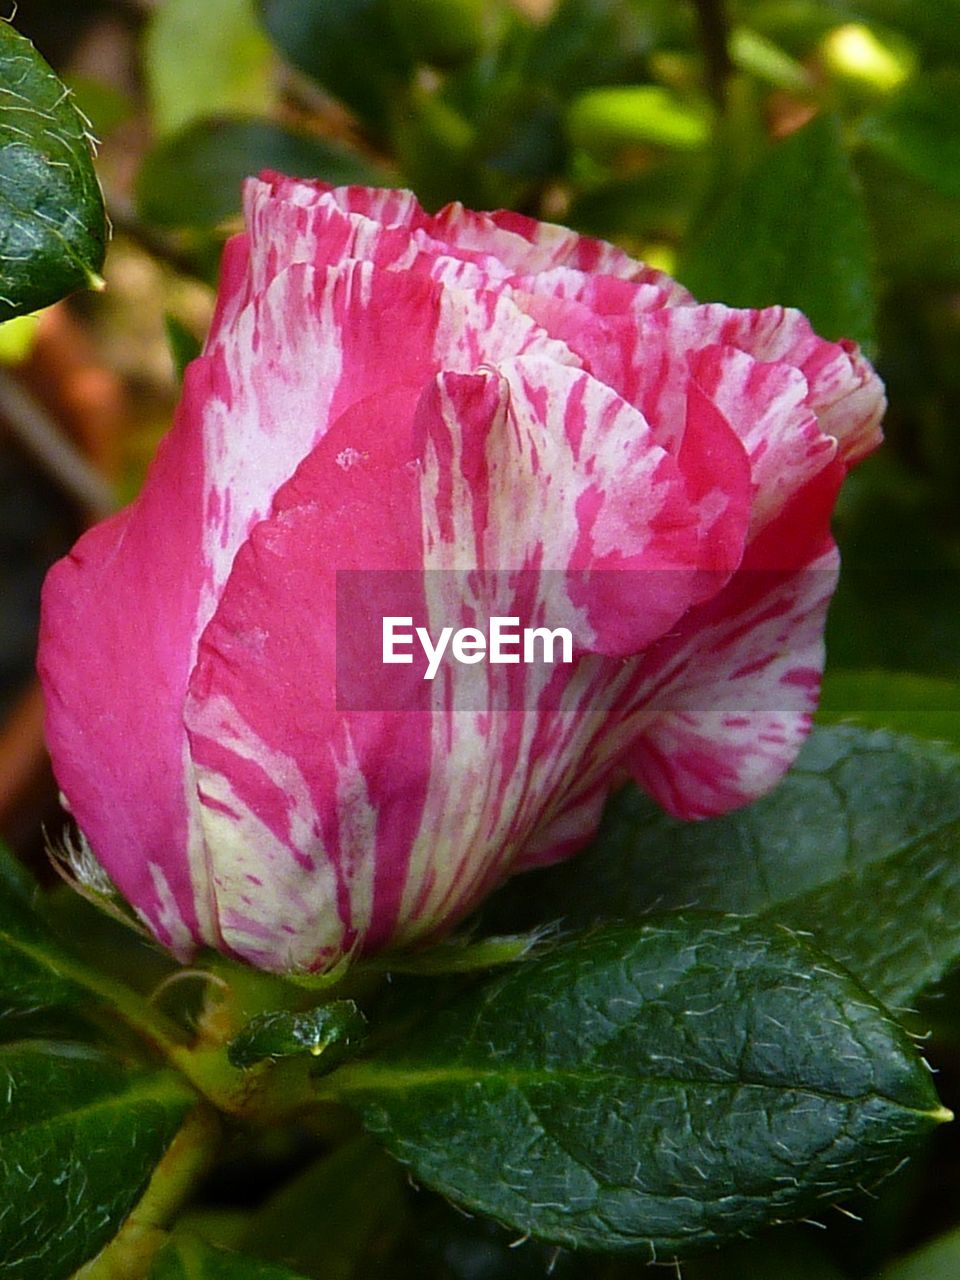 flower, nature, petal, beauty in nature, growth, flower head, plant, fragility, close-up, no people, pink color, leaf, drop, outdoors, freshness, day, water, hibiscus